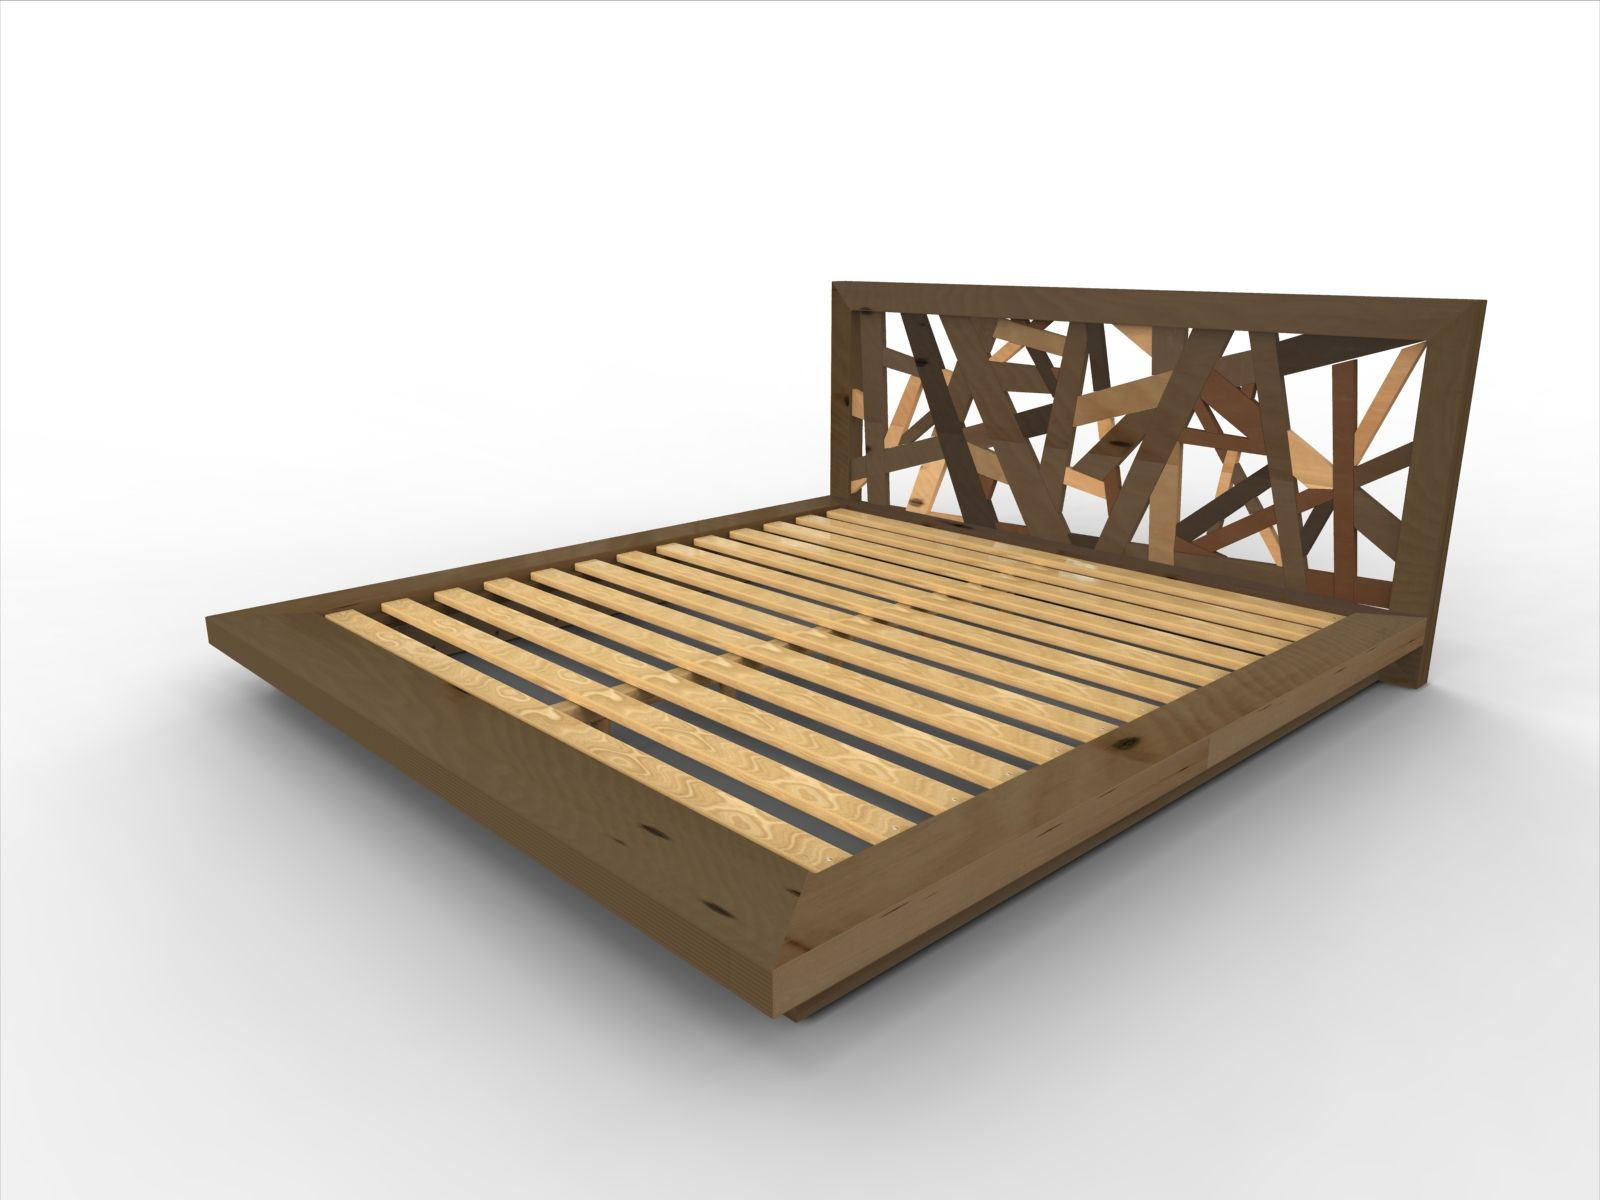 Best ideas about DIY Platform Bed Frame Queen . Save or Pin DIY Bed Frame with Storage Now.